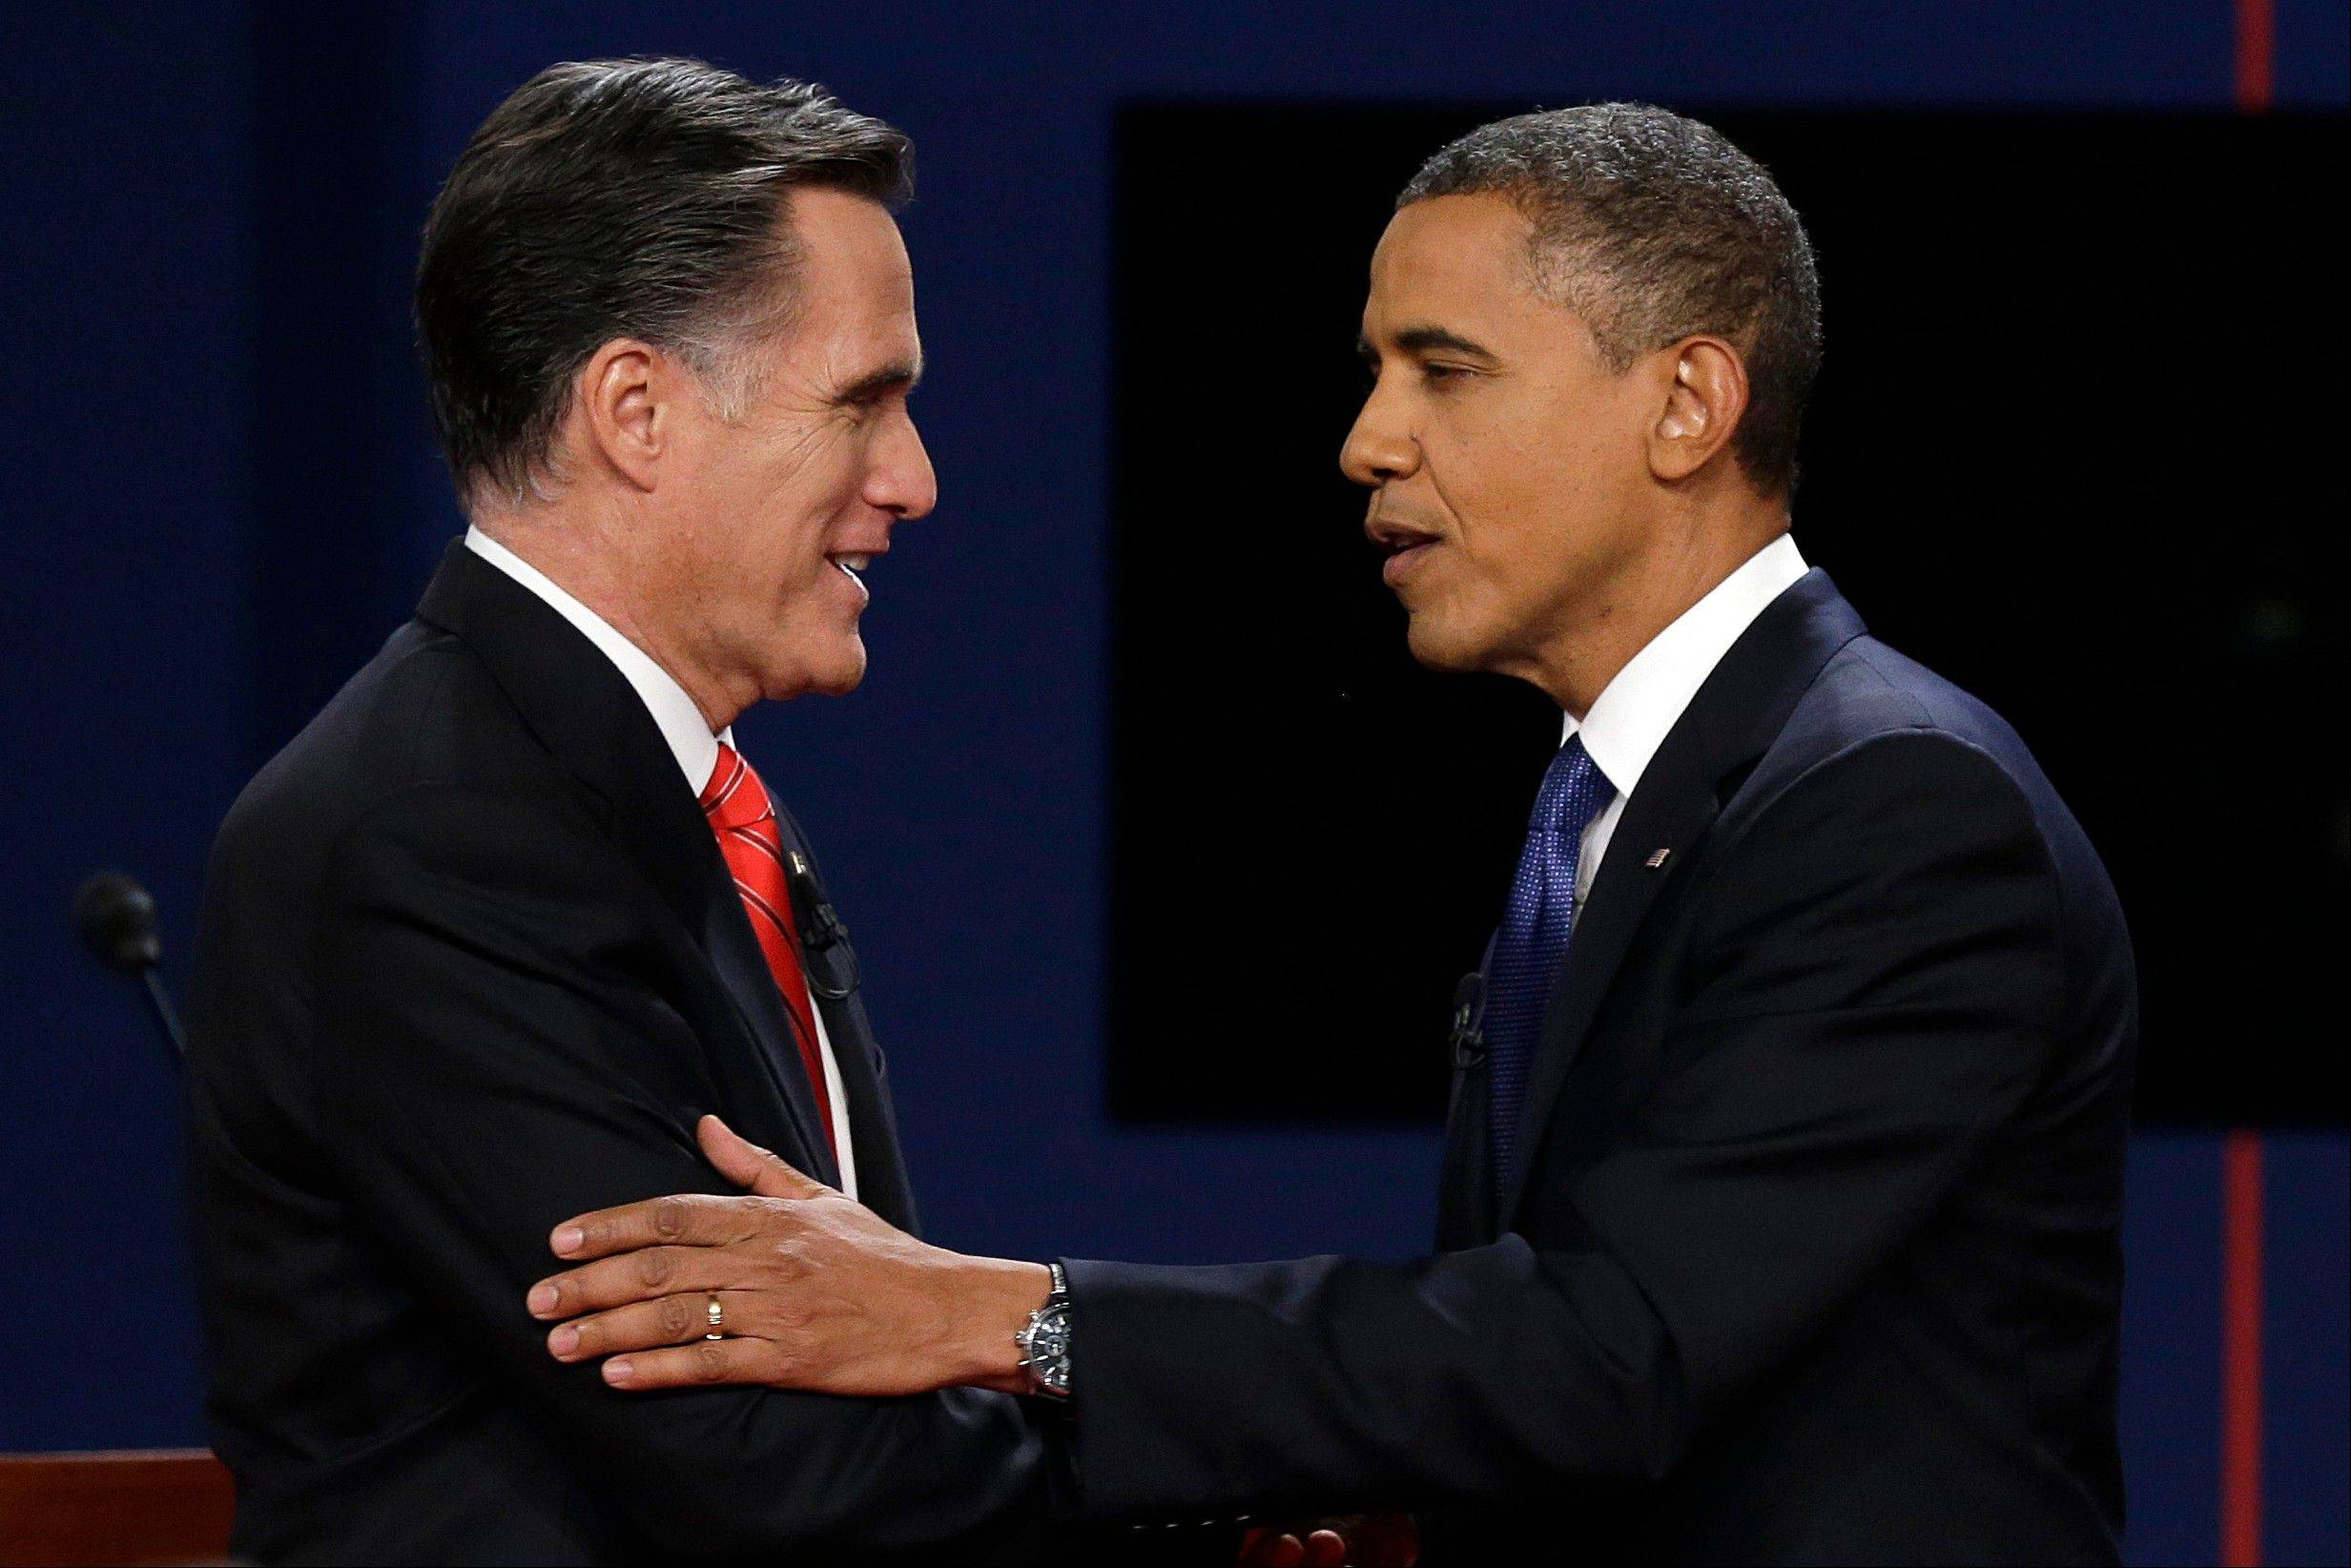 Republican presidential nominee Mitt Romney and President Barack Obama shake hands Wednesday after the first presidential debate at the University of Denver, in Denver. Both men relished the wonky talk, but Mitt Romney also showed the easy confidence a presidential contender needs � and a bit of the salesman�s dynamic presentation.